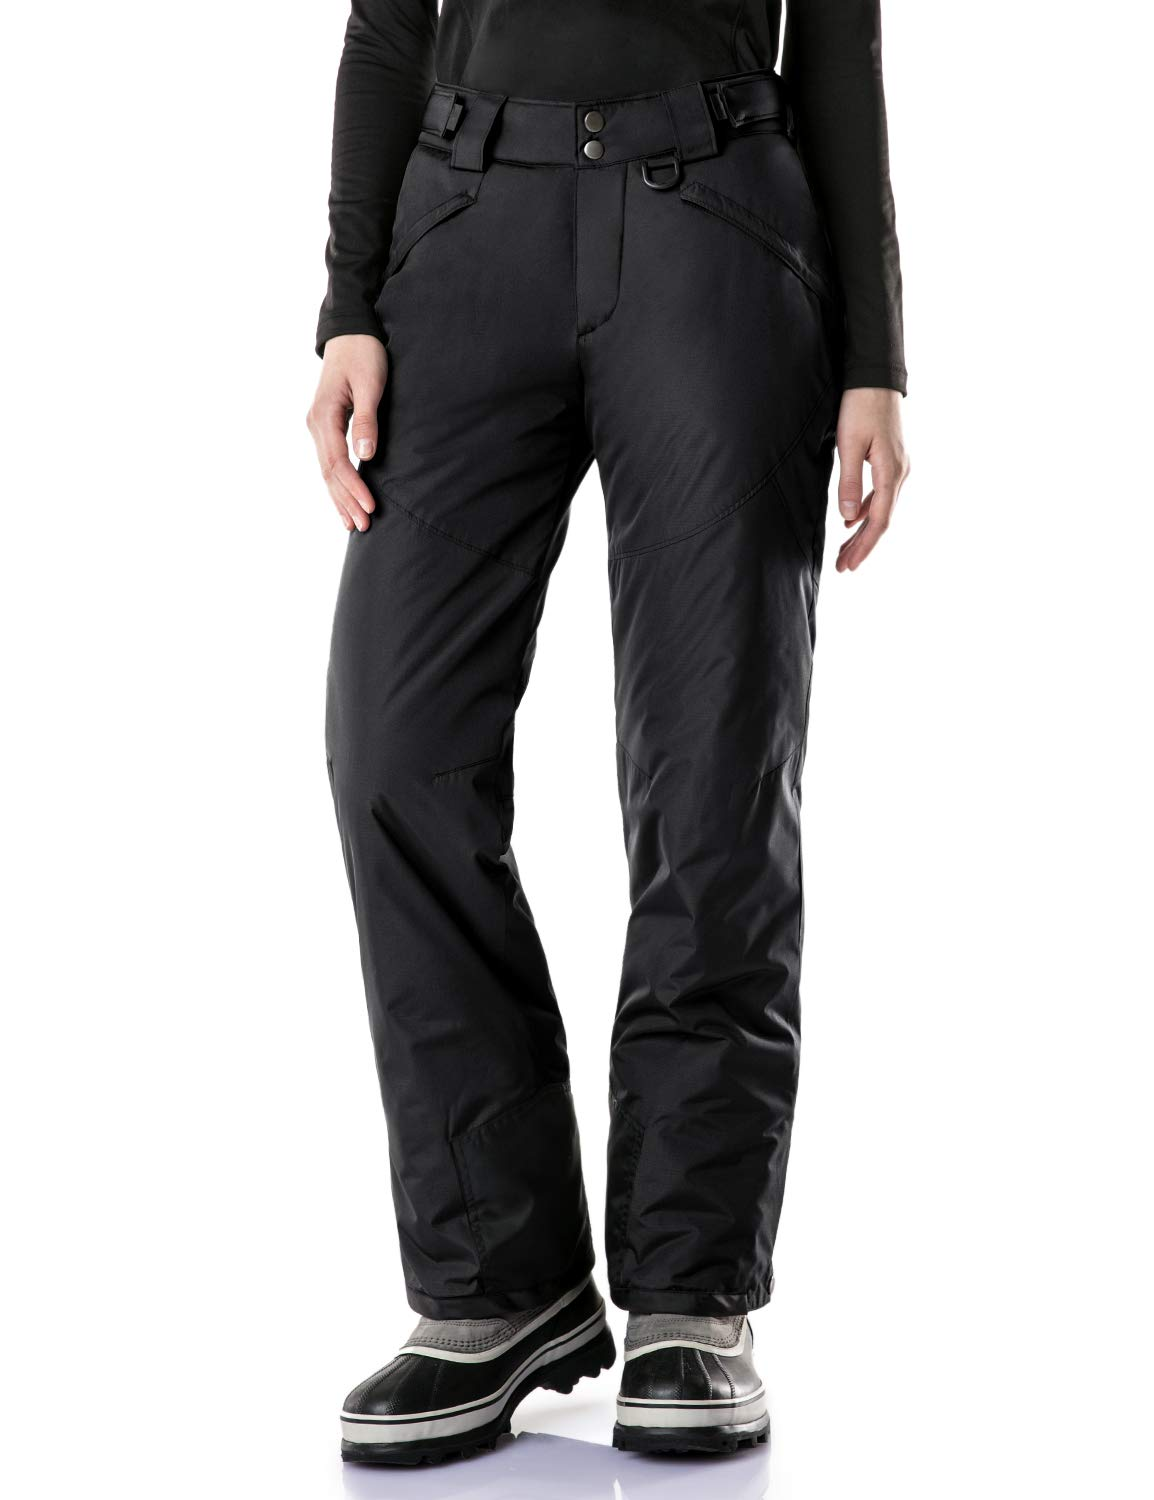 8d61a7c4cb0936 TSLA Women s Rip-Stop Snow Pants Windproof Ski Insulated Water-Repel Bottoms  XKB90 XKB92